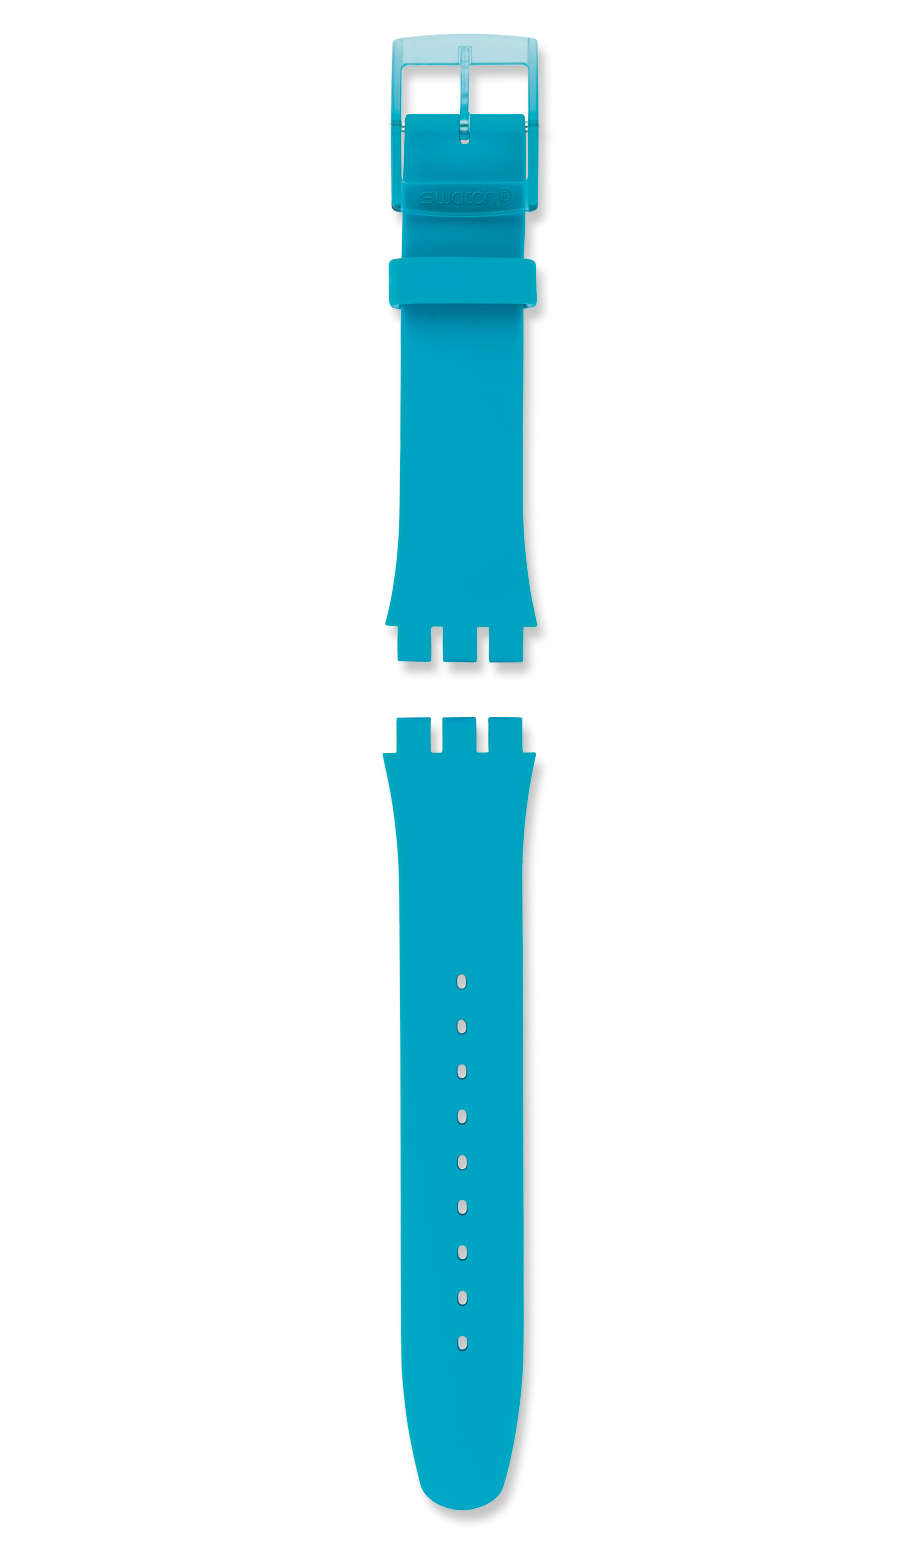 Swatch - TURQUOISE REBEL / SILICONE STRAP - 1